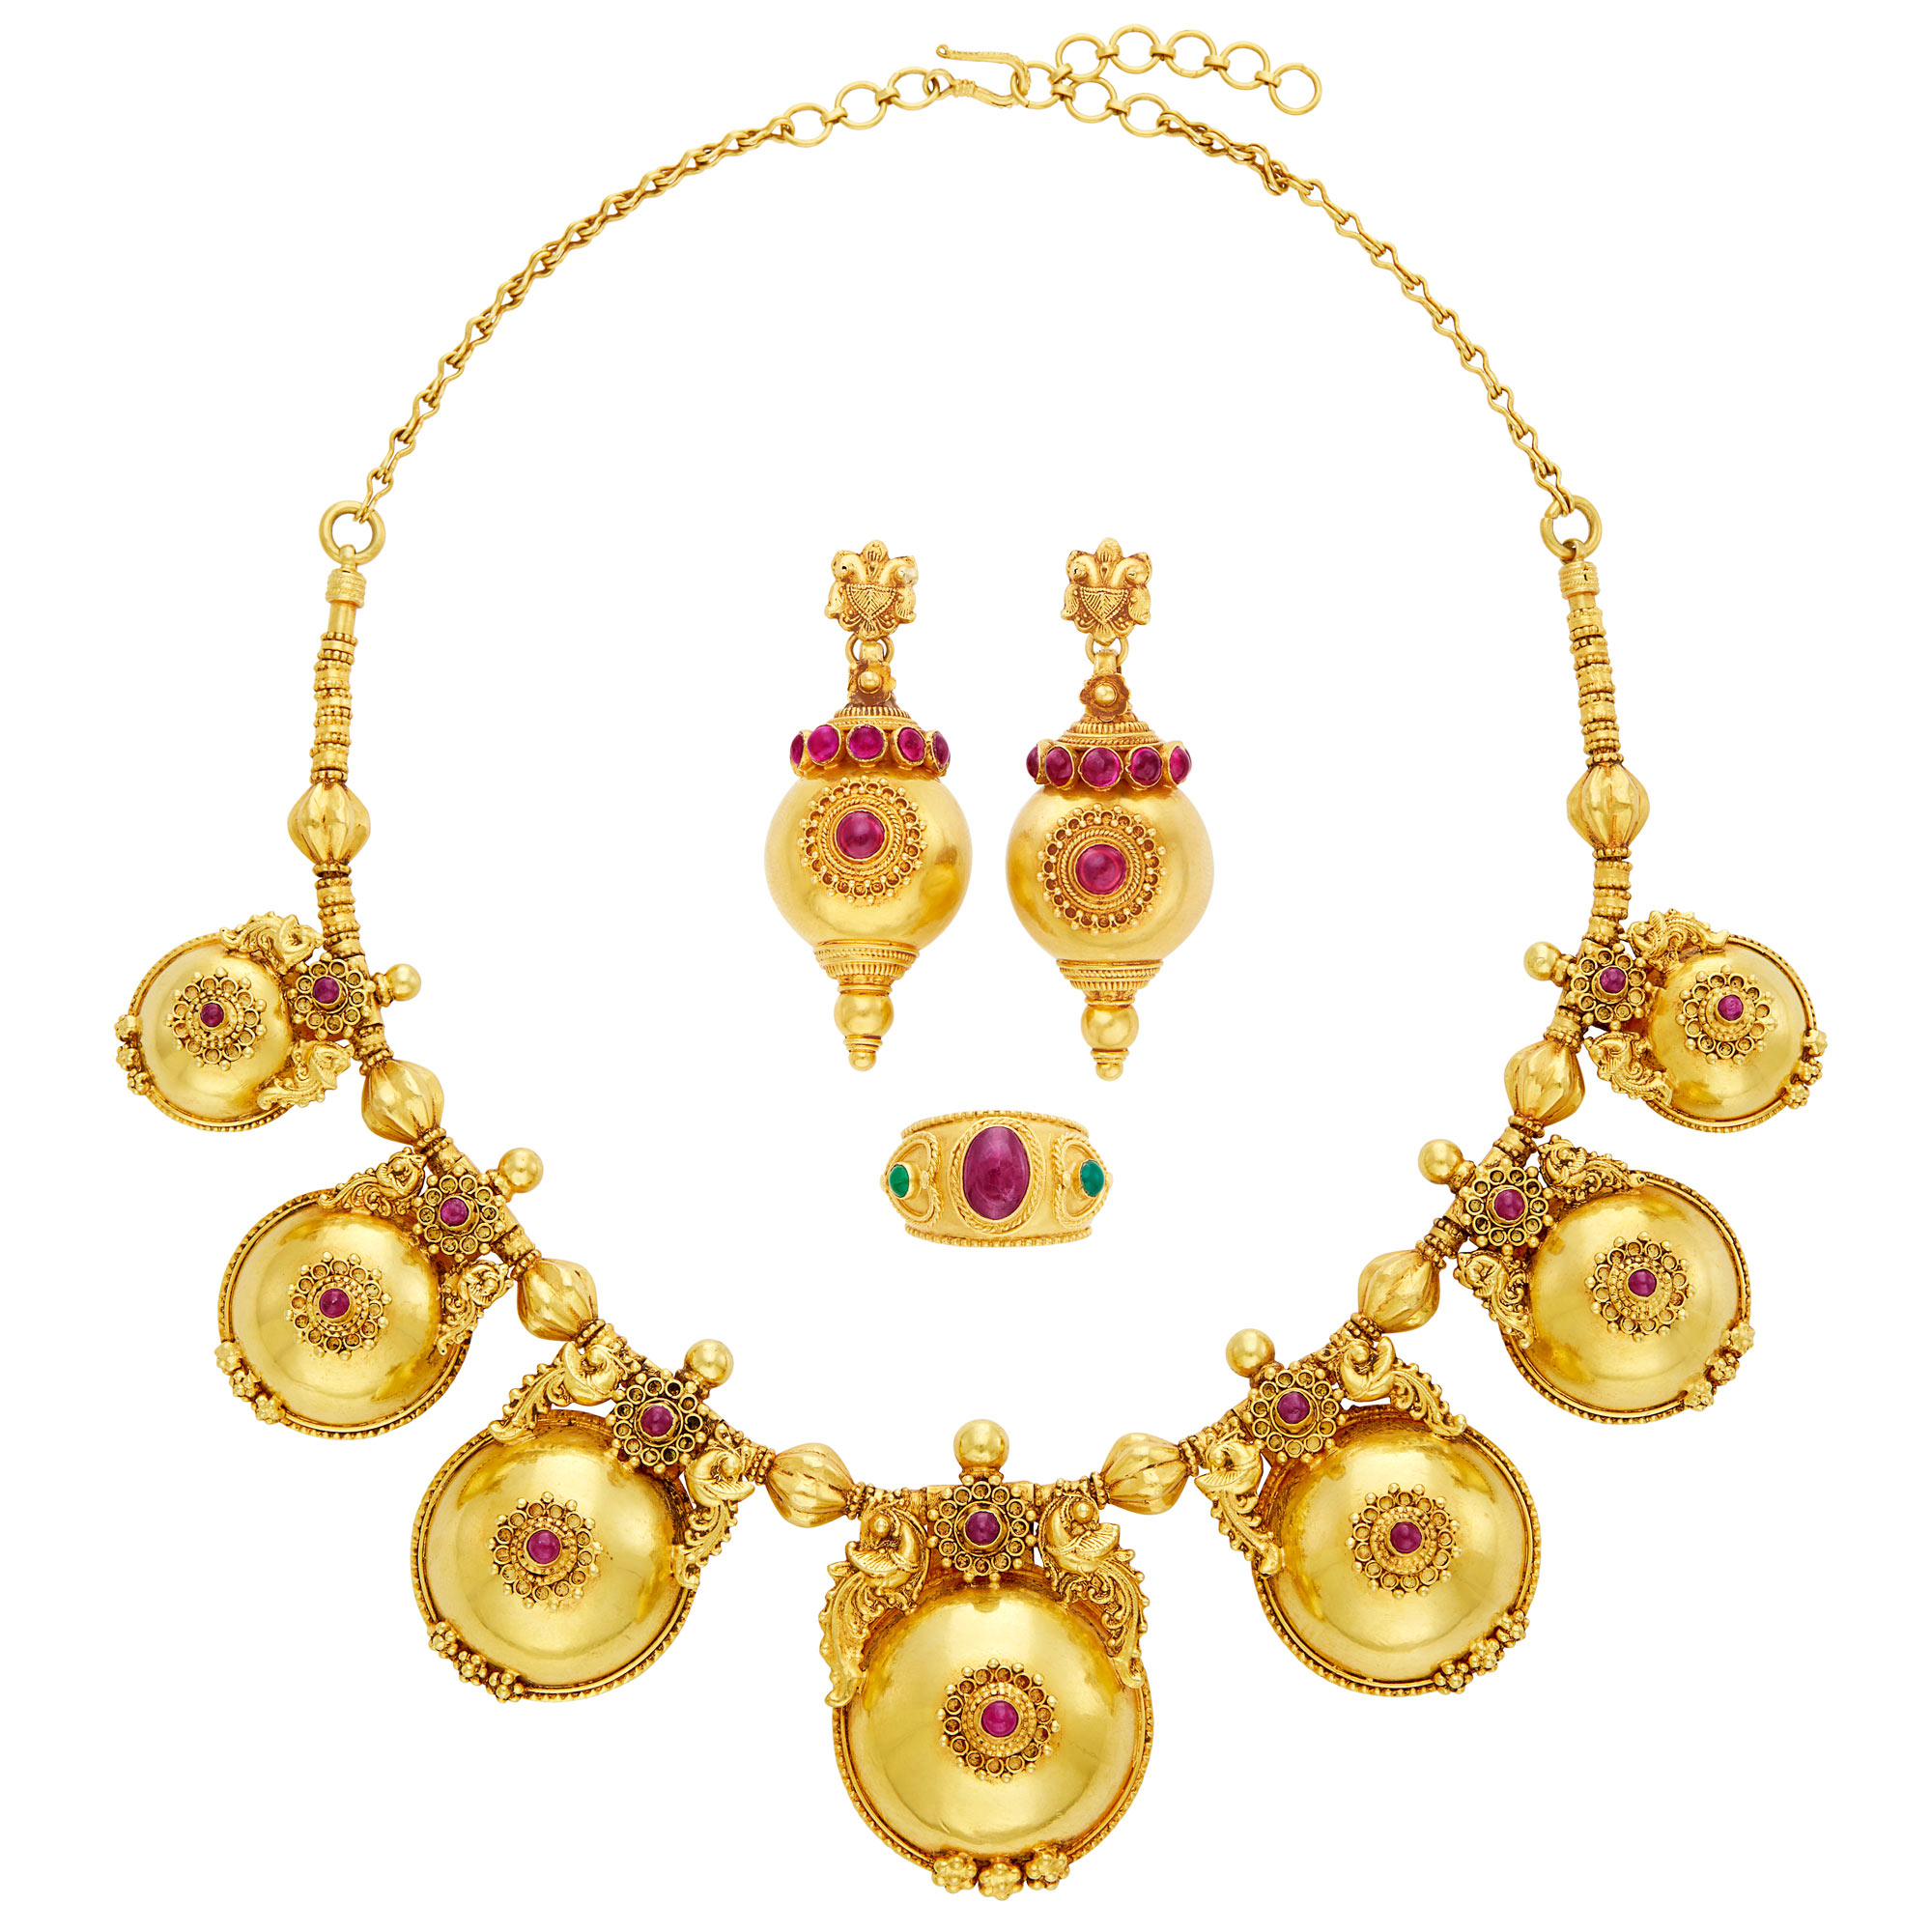 Lot image - Gold and Cabochon Ruby Necklace, Pair of Gold and Simulated Ruby Pendant-Earrings and Cabochon Ruby Ring